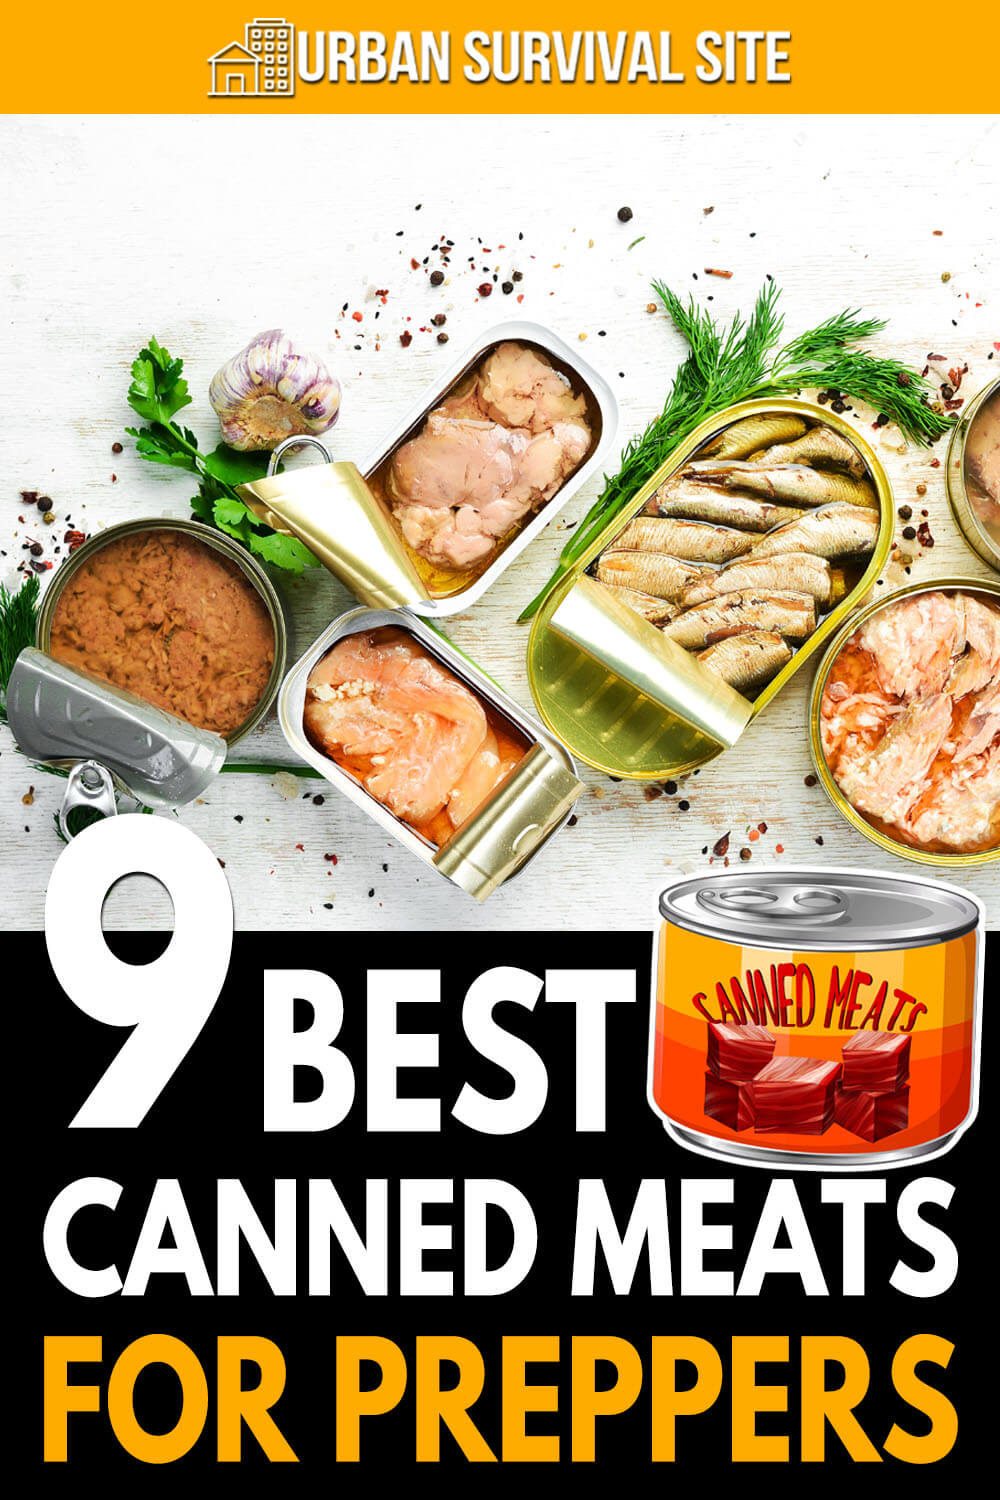 9 Best Canned Meats for Preppers